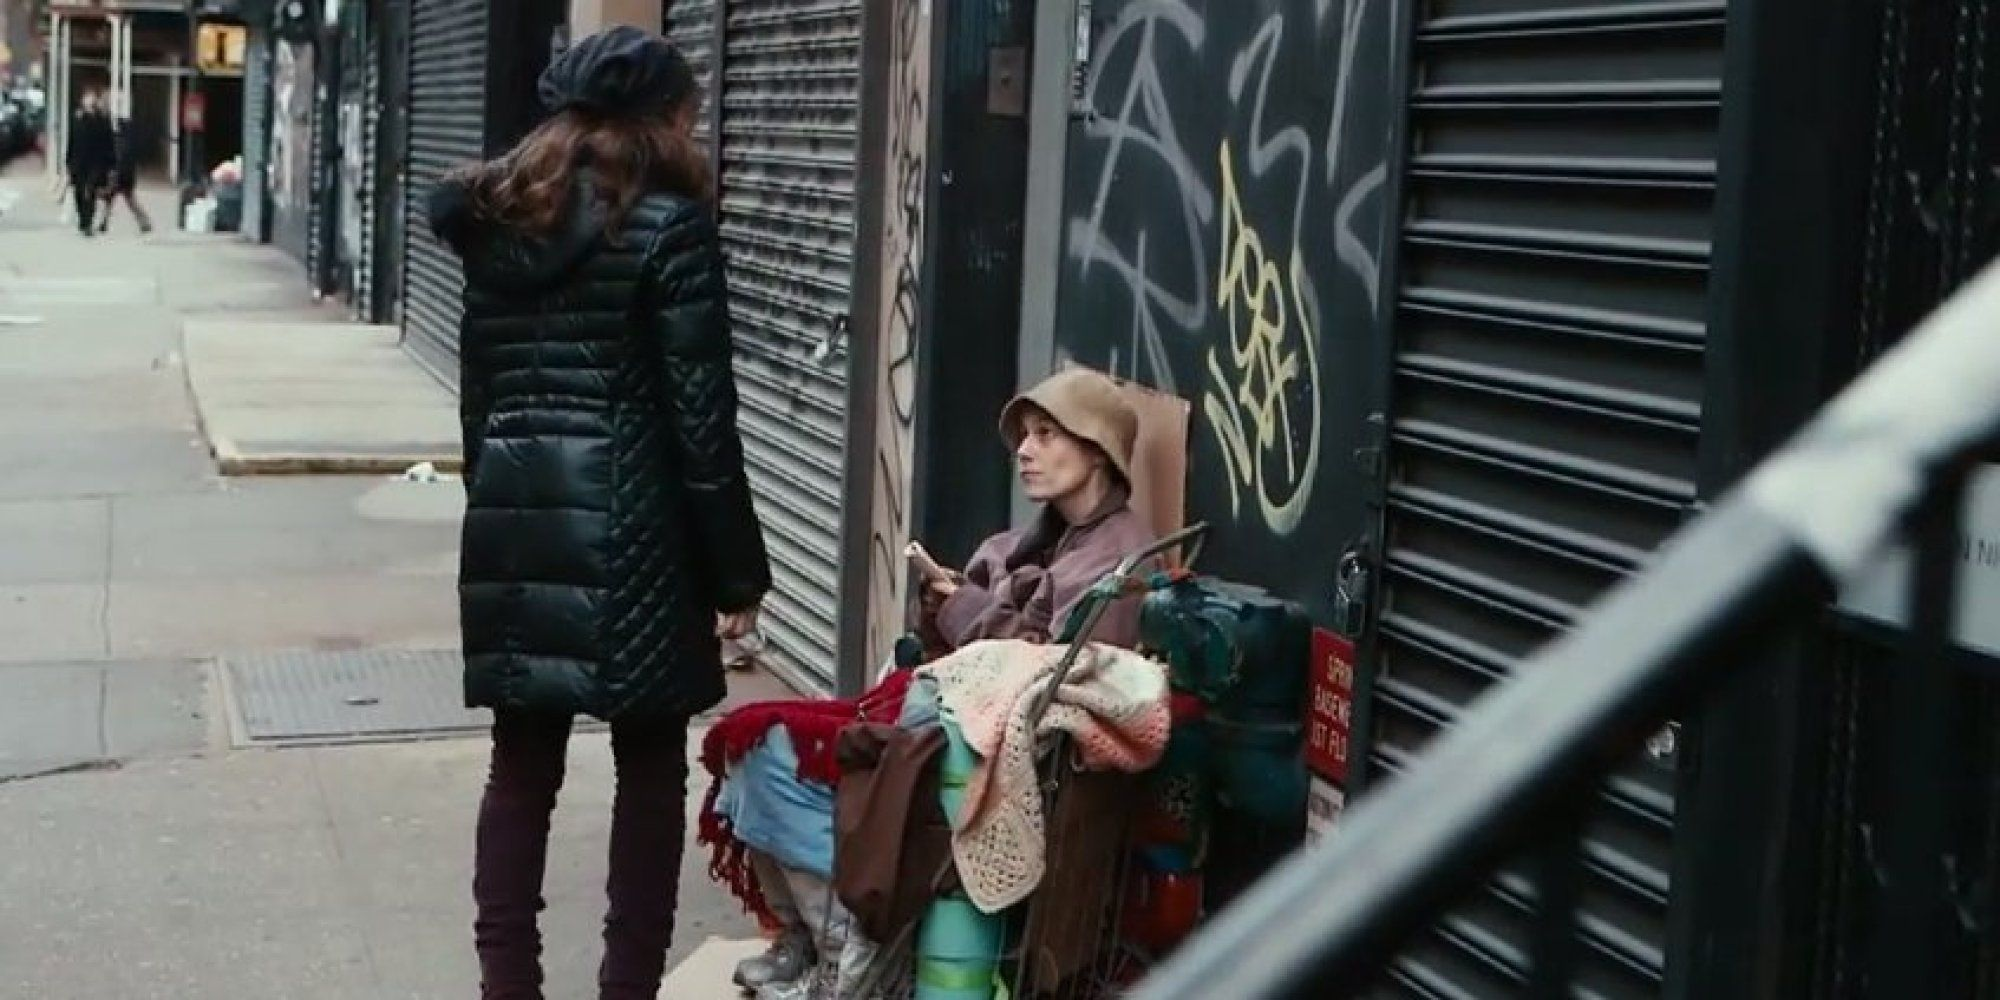 People Disguised As Homeless Ignored By Loved Ones On Street In Stunning Social Experiment Social Experiment Homeless Homeless Person